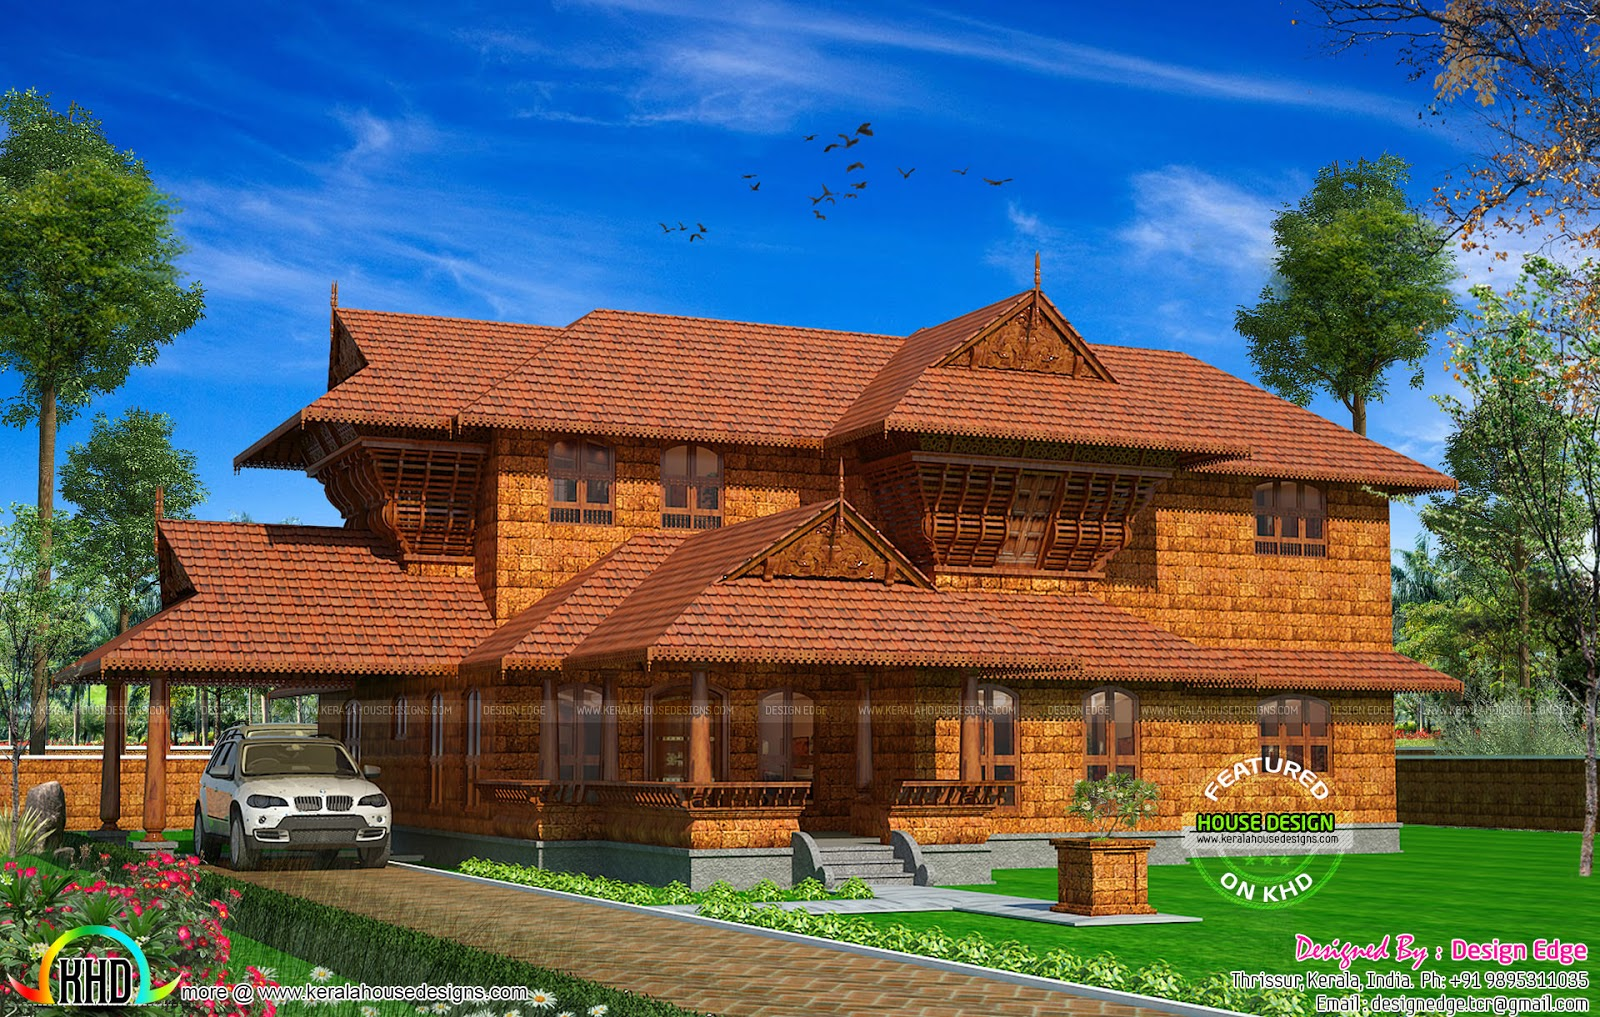 Kerala traditional home design photos pistor hermann for Kerala traditional home plans with photos